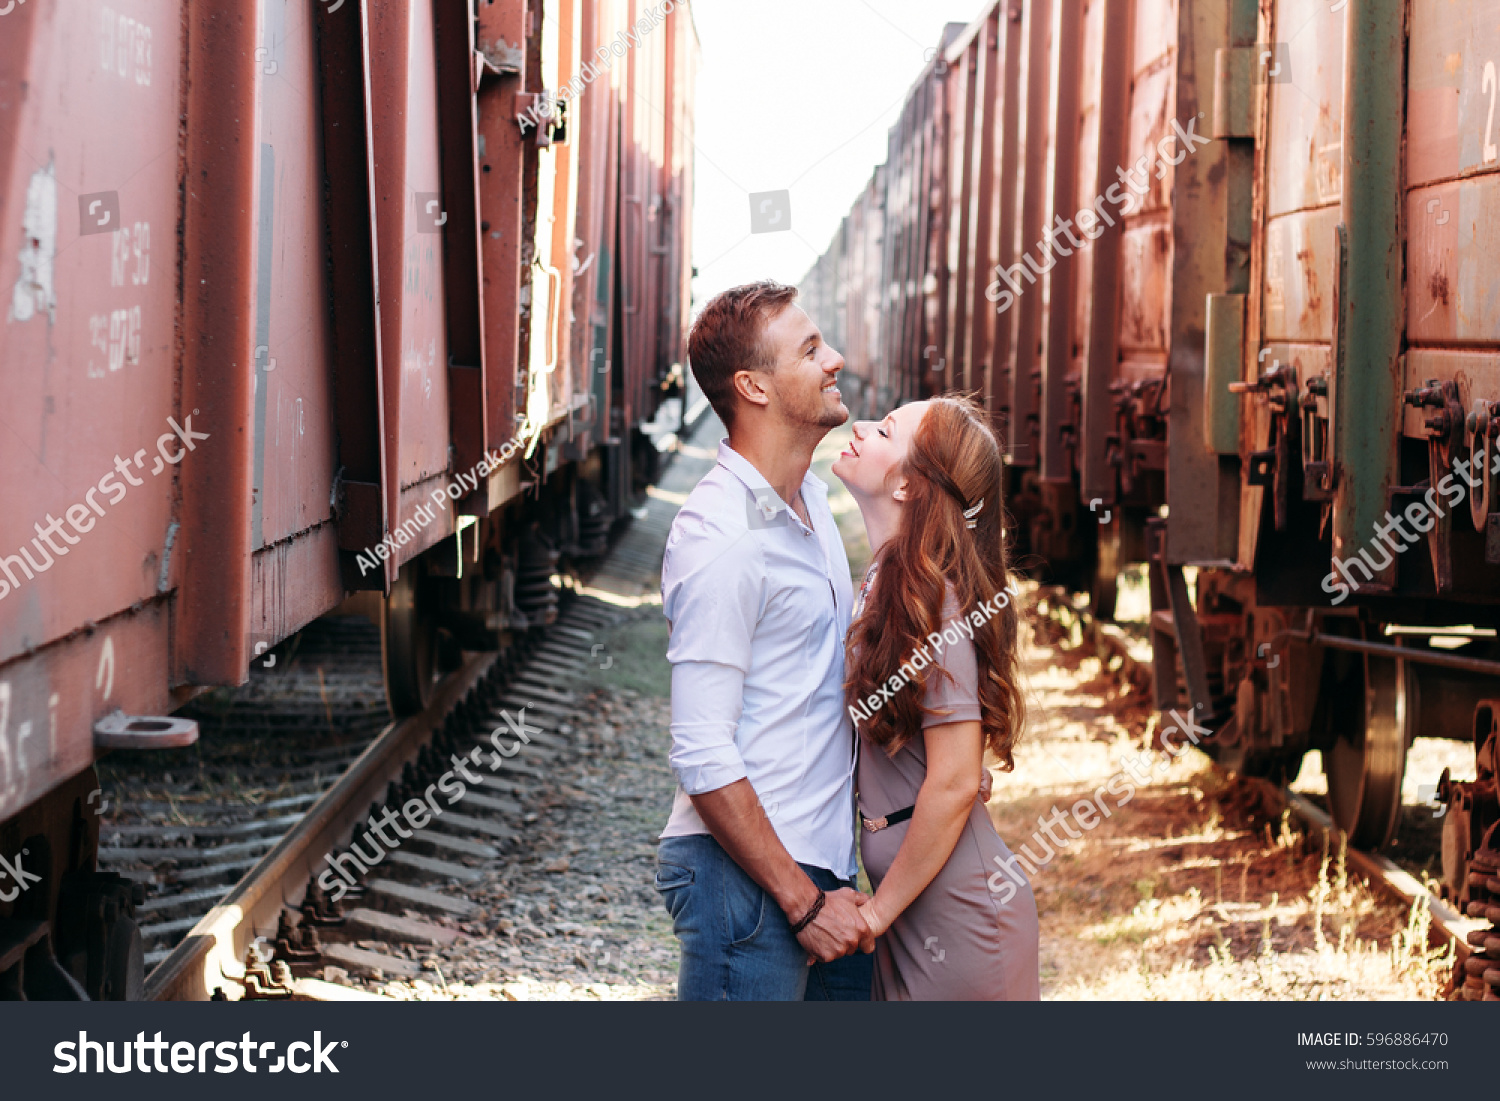 Love Story Models Love Couple Love Stock Photo 596886470